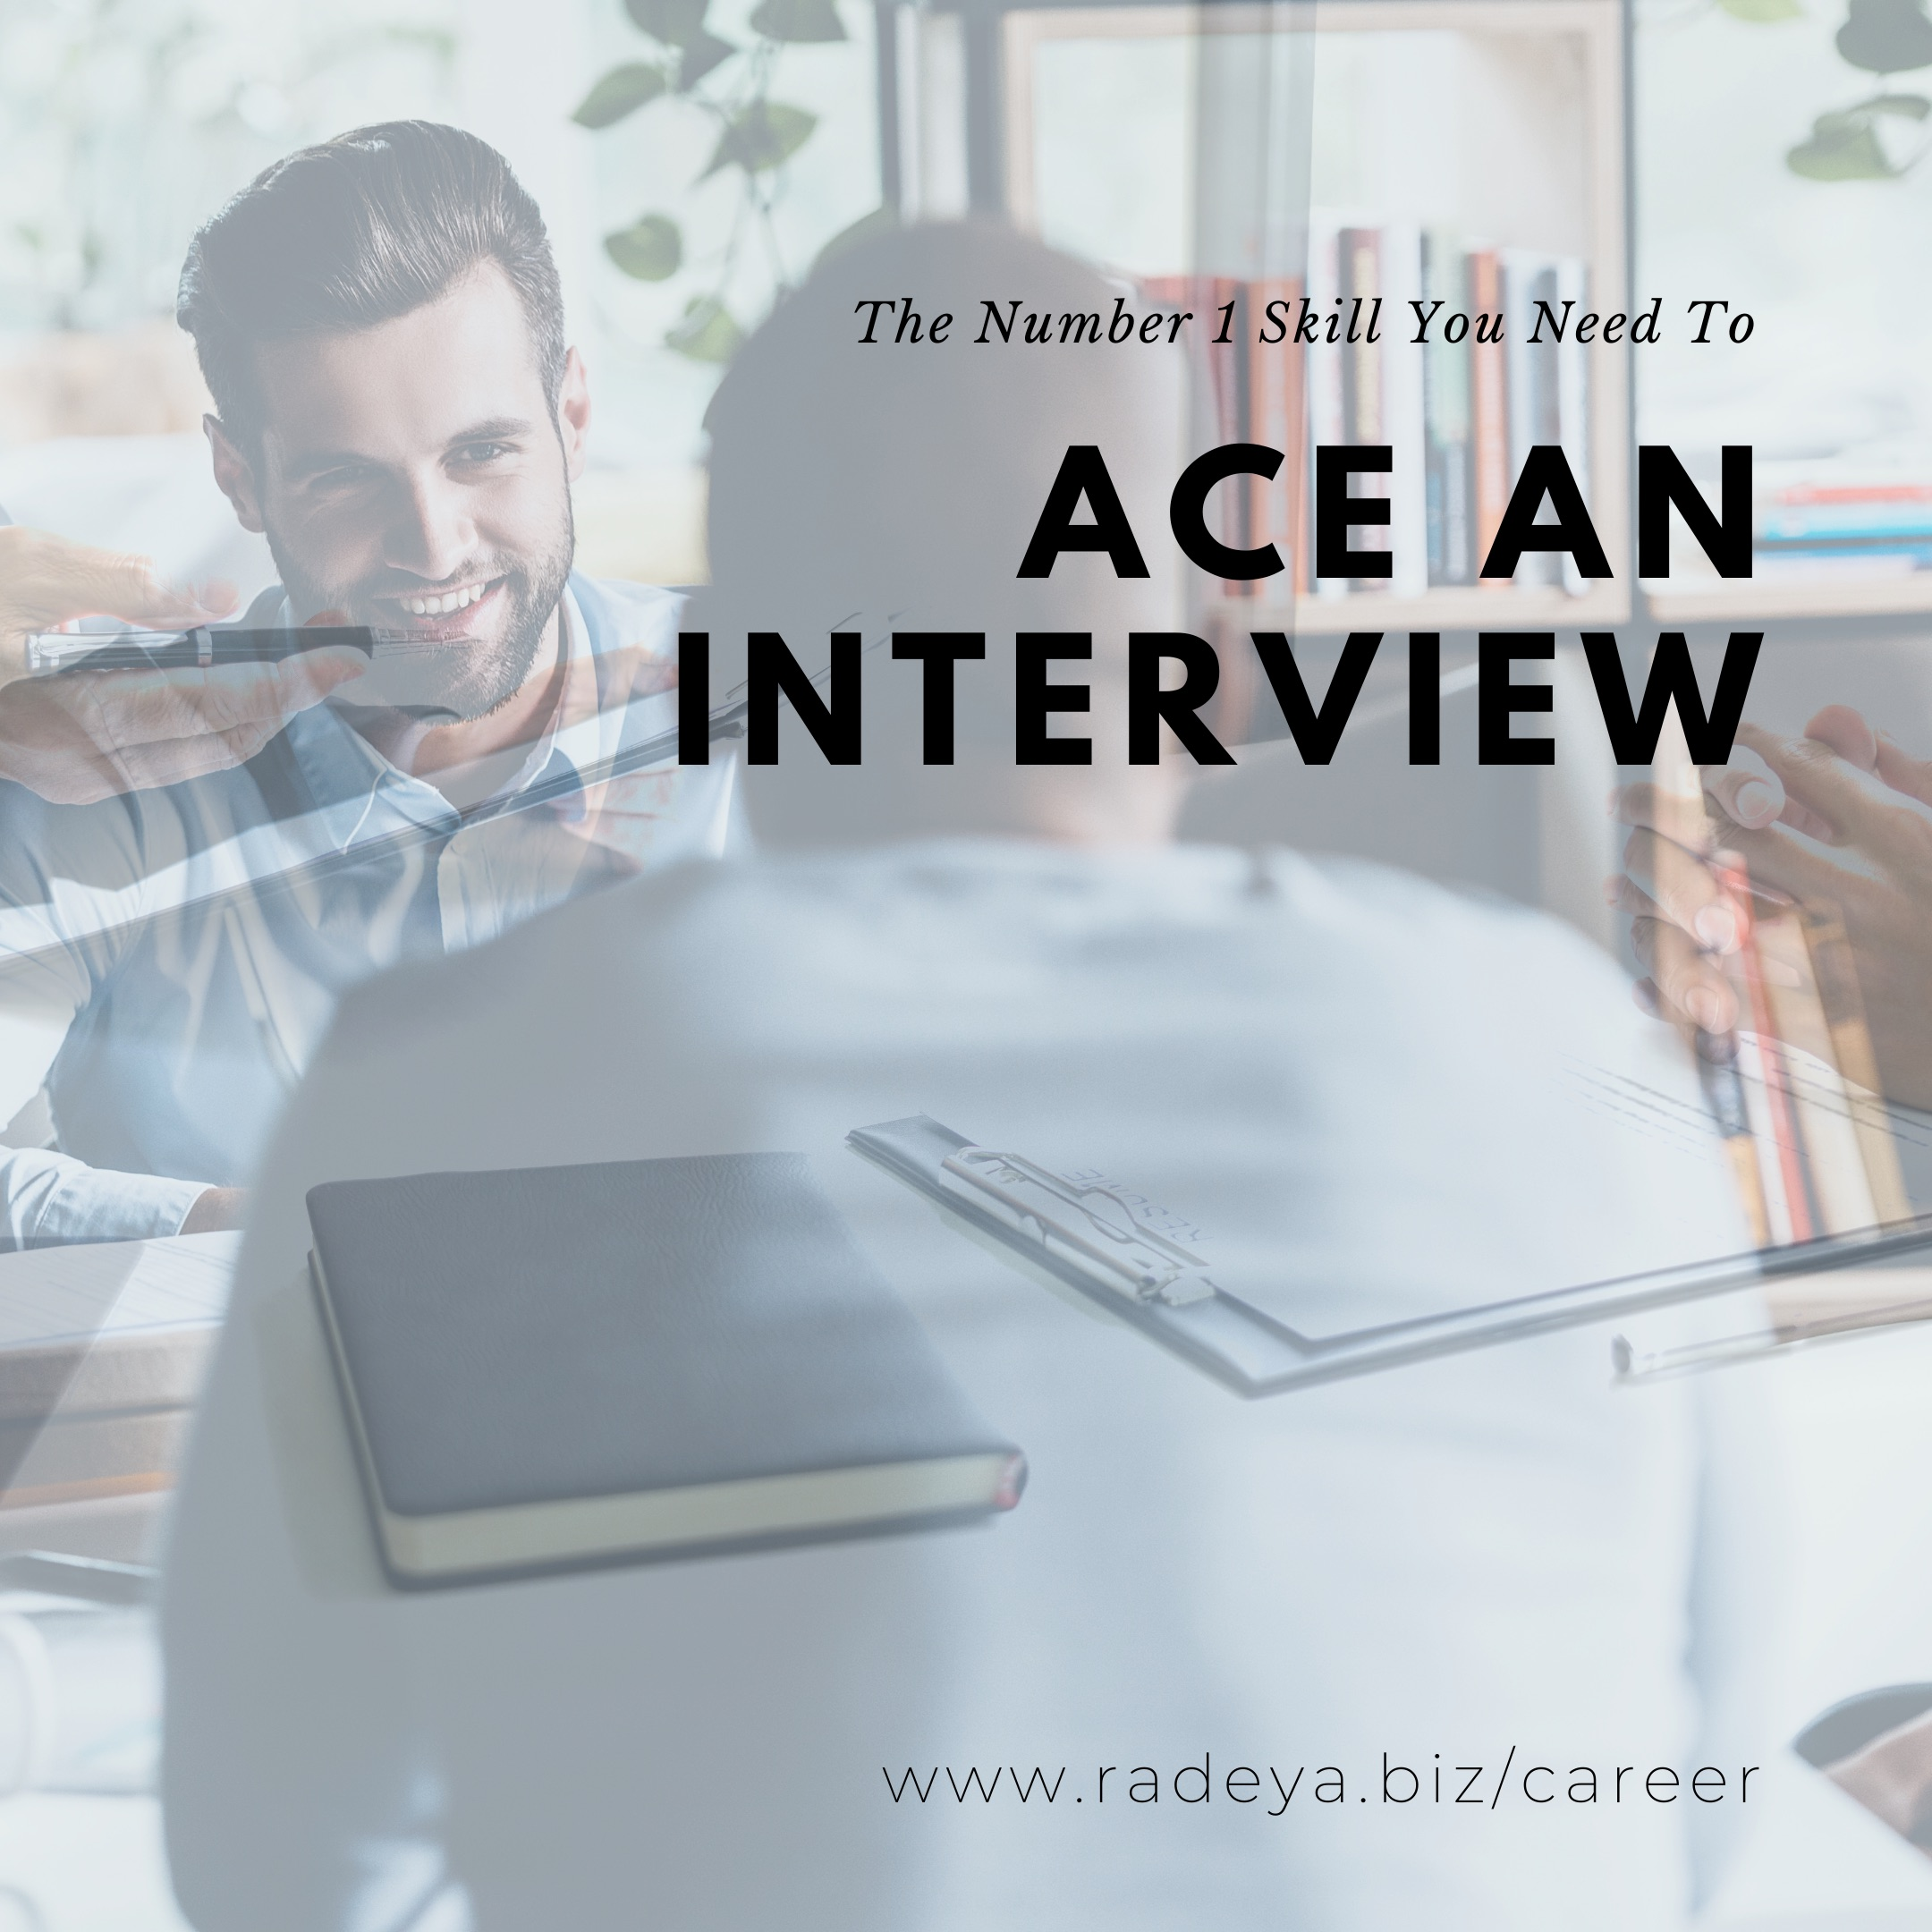 A job seeker having a job interview with background images of documents, pen, and thoughts